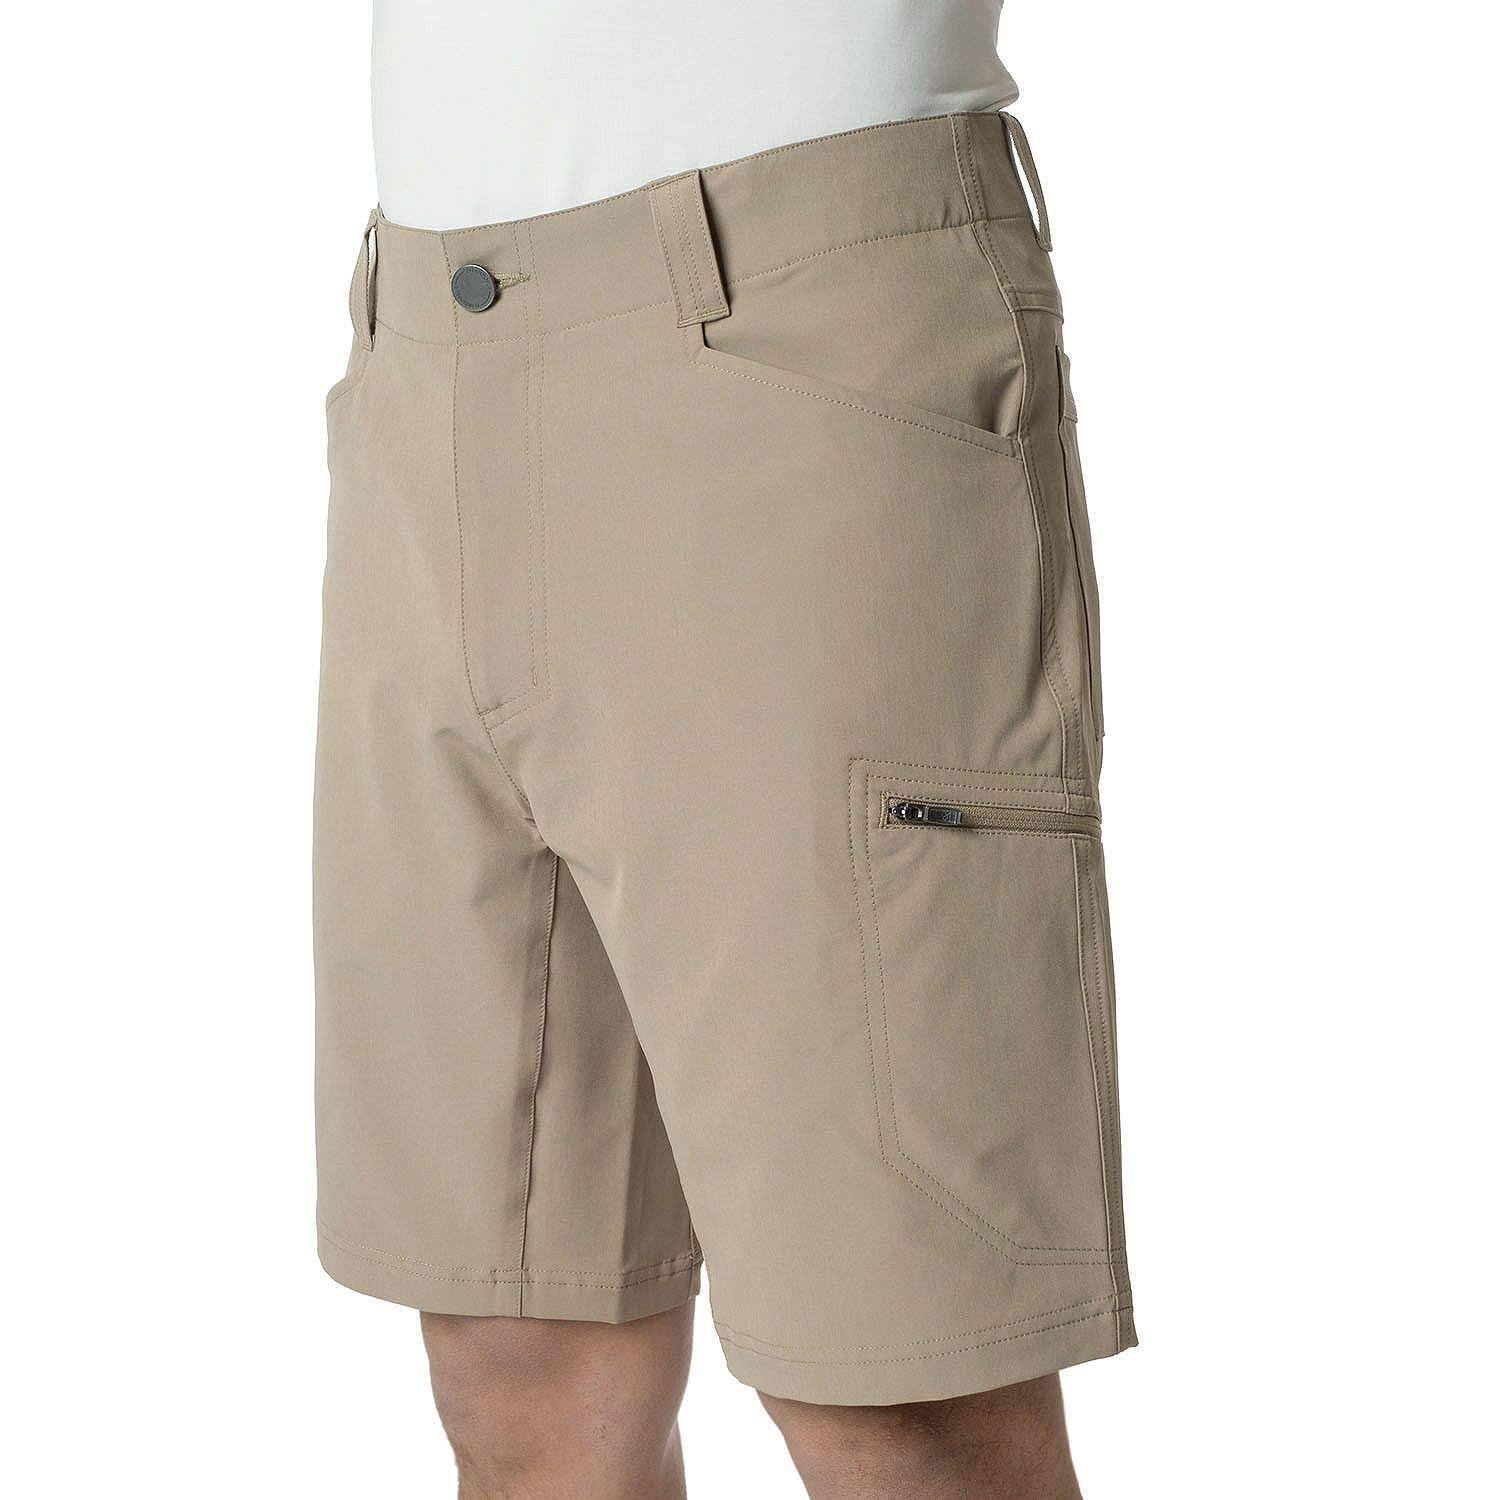 ZeroXposur Men's Lightweight Stretch Travel Shorts Color: Oak Size: (30)-(31)-(32)-(33)-(34)-(36)-(38)-(40) New Tags (40) by ZeroXposur (Image #2)